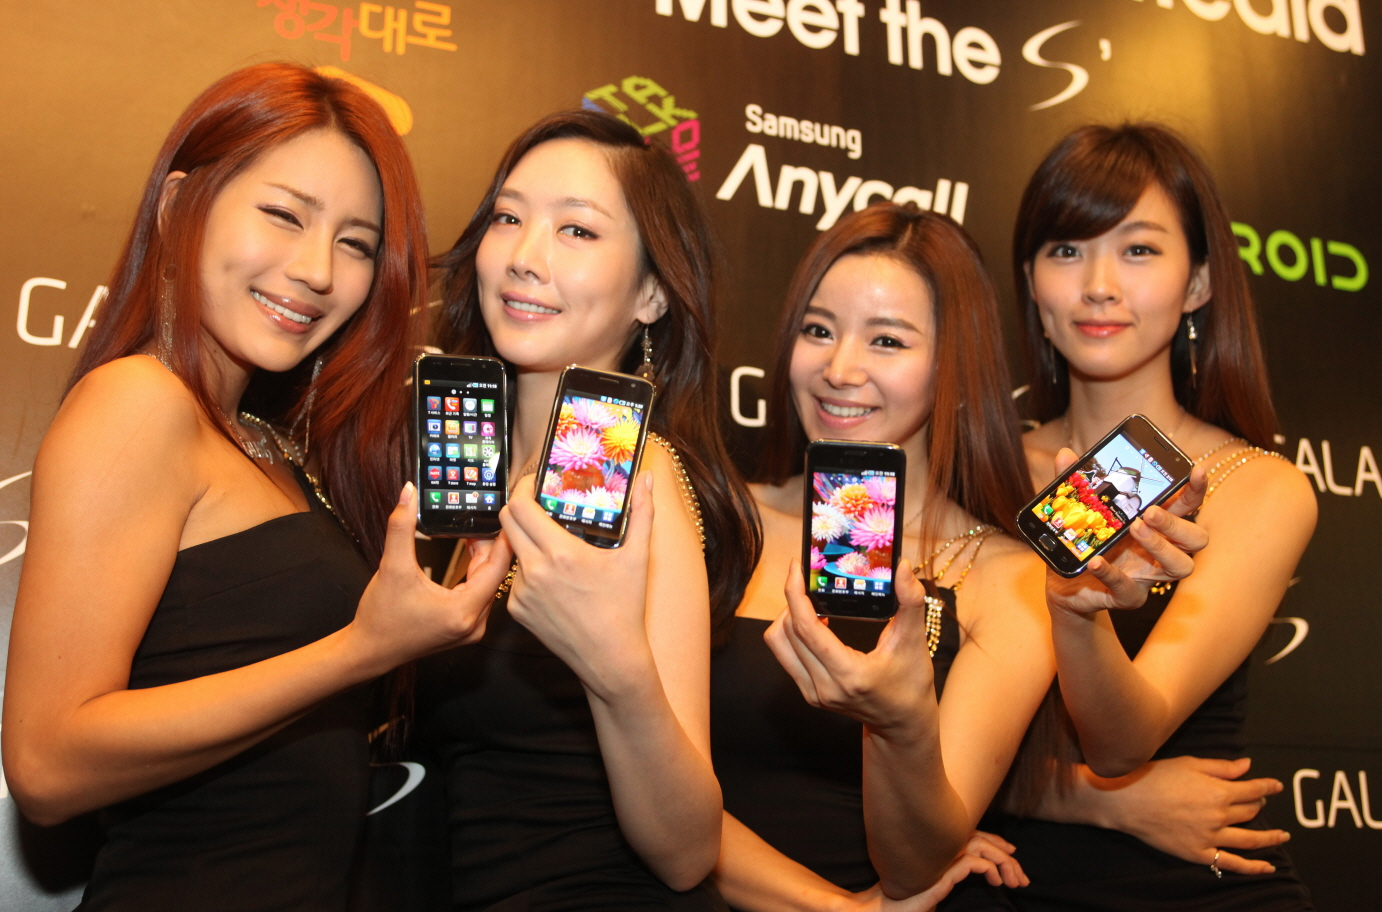 samsung_galaxy_s_android_korean_launch_4.jpg (1382×912)